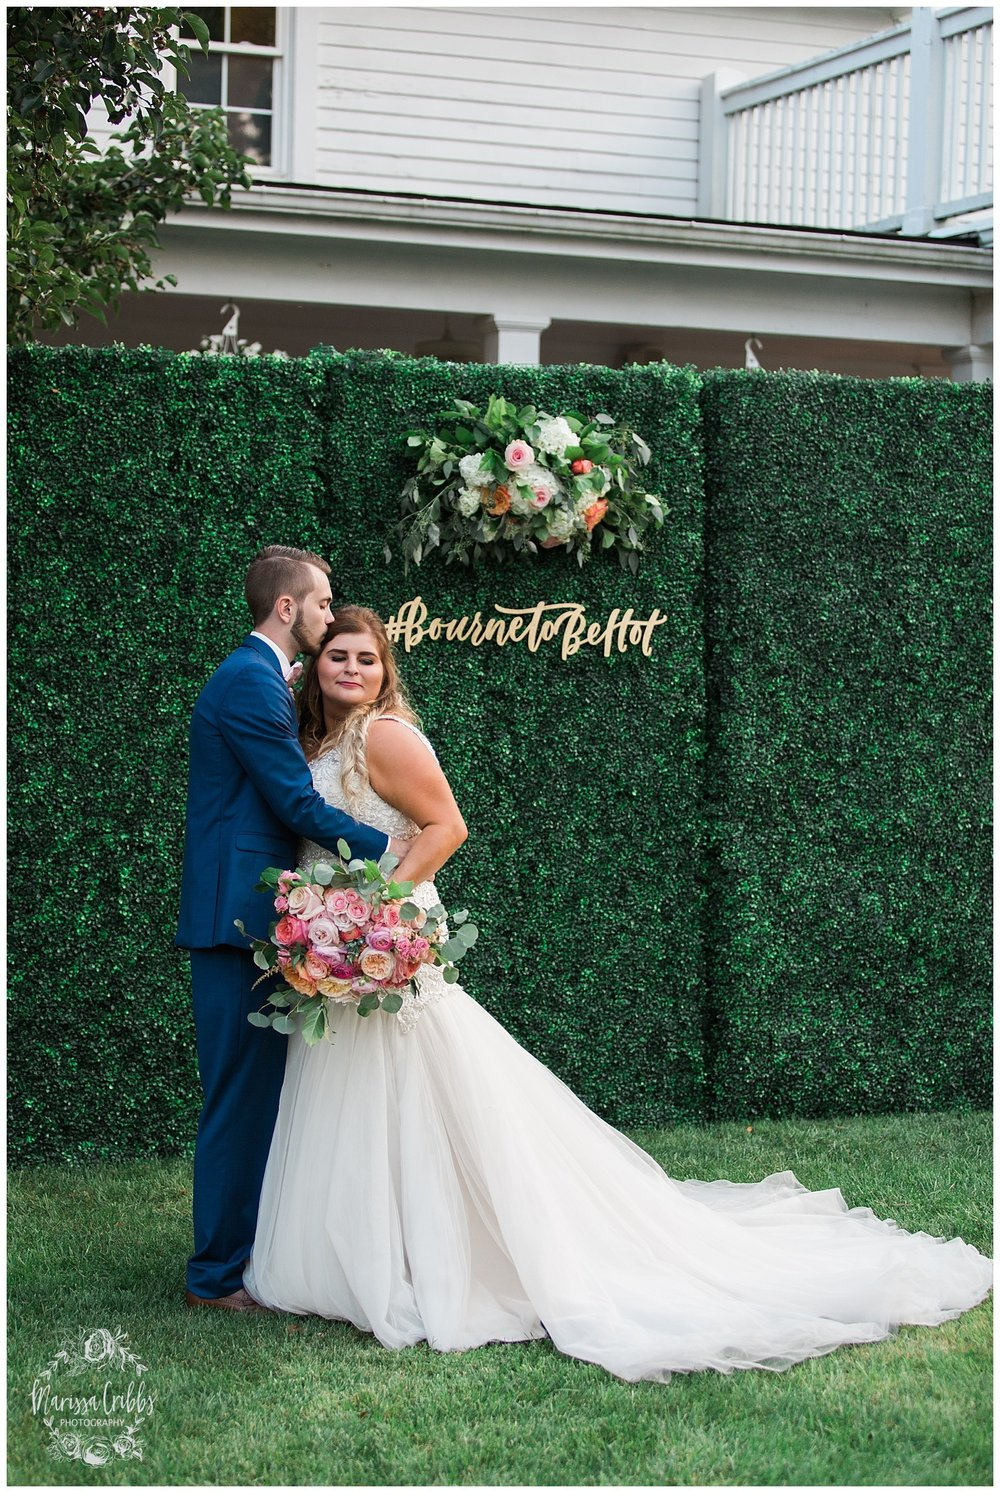 DANI & MICHAEL MARRIED | HAWTHORNE HOUSE WEDDING | MARISSA CRIBBS PHOTOGRAPHY_2691.jpg